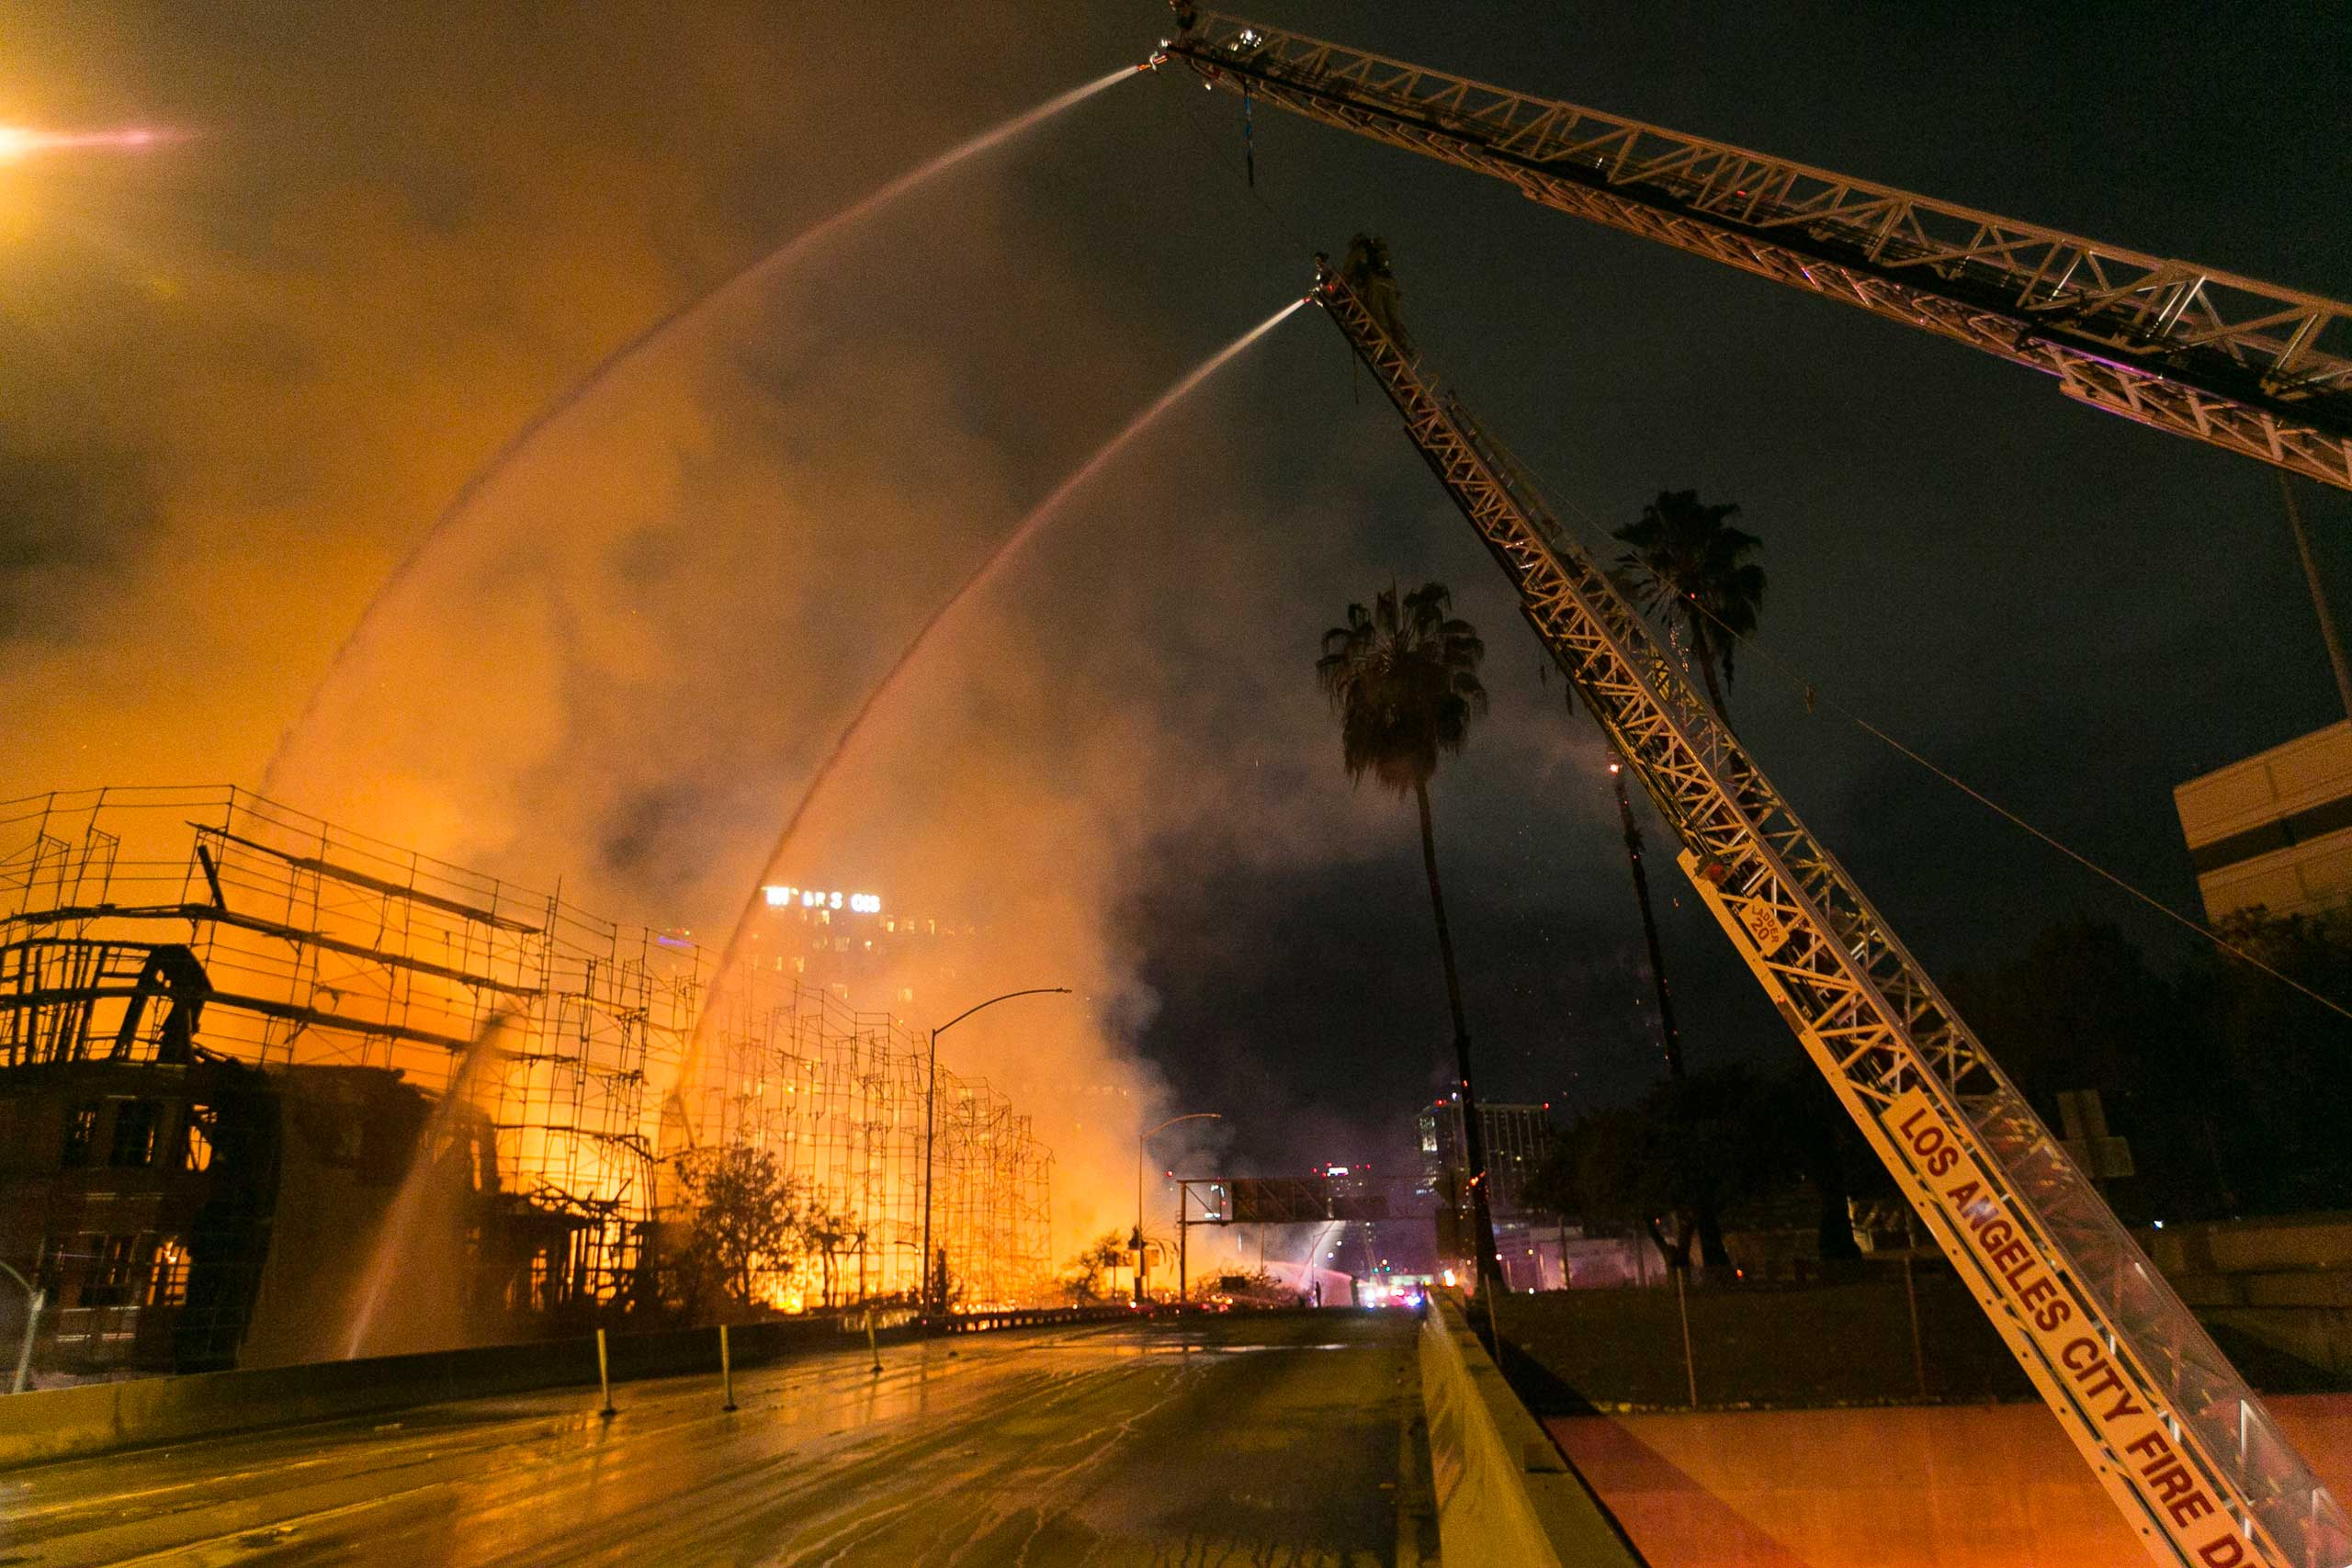 Firefighters battle a blaze at an apartment building under construction in Los Angeles on Dec. 8, 2014.